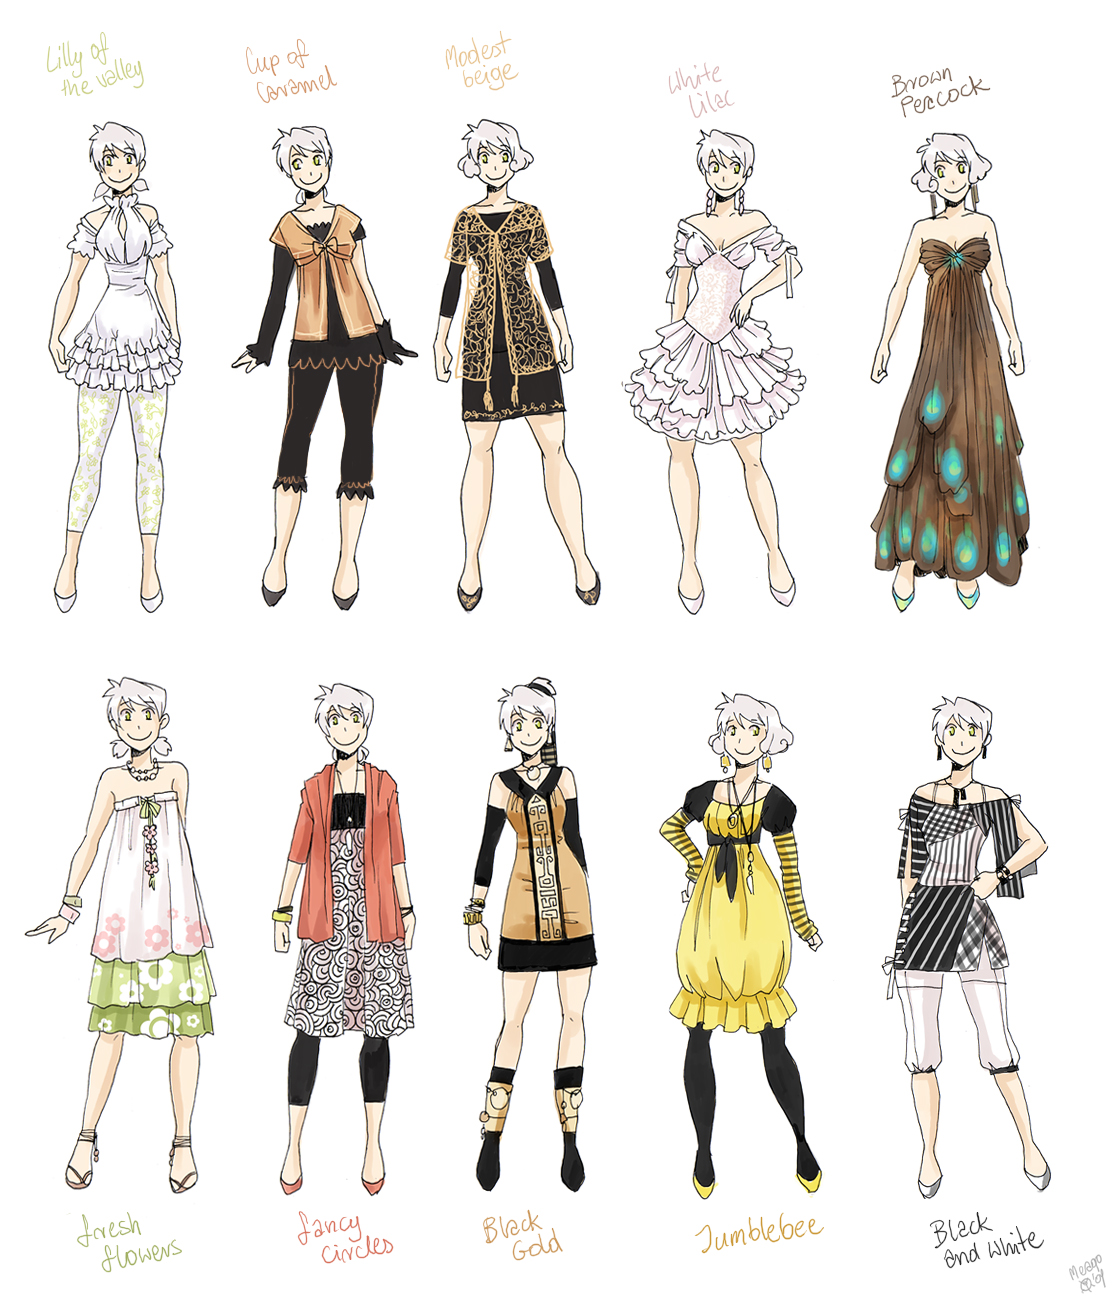 clothes 5 by meago watch designs interfaces fashion fashion design